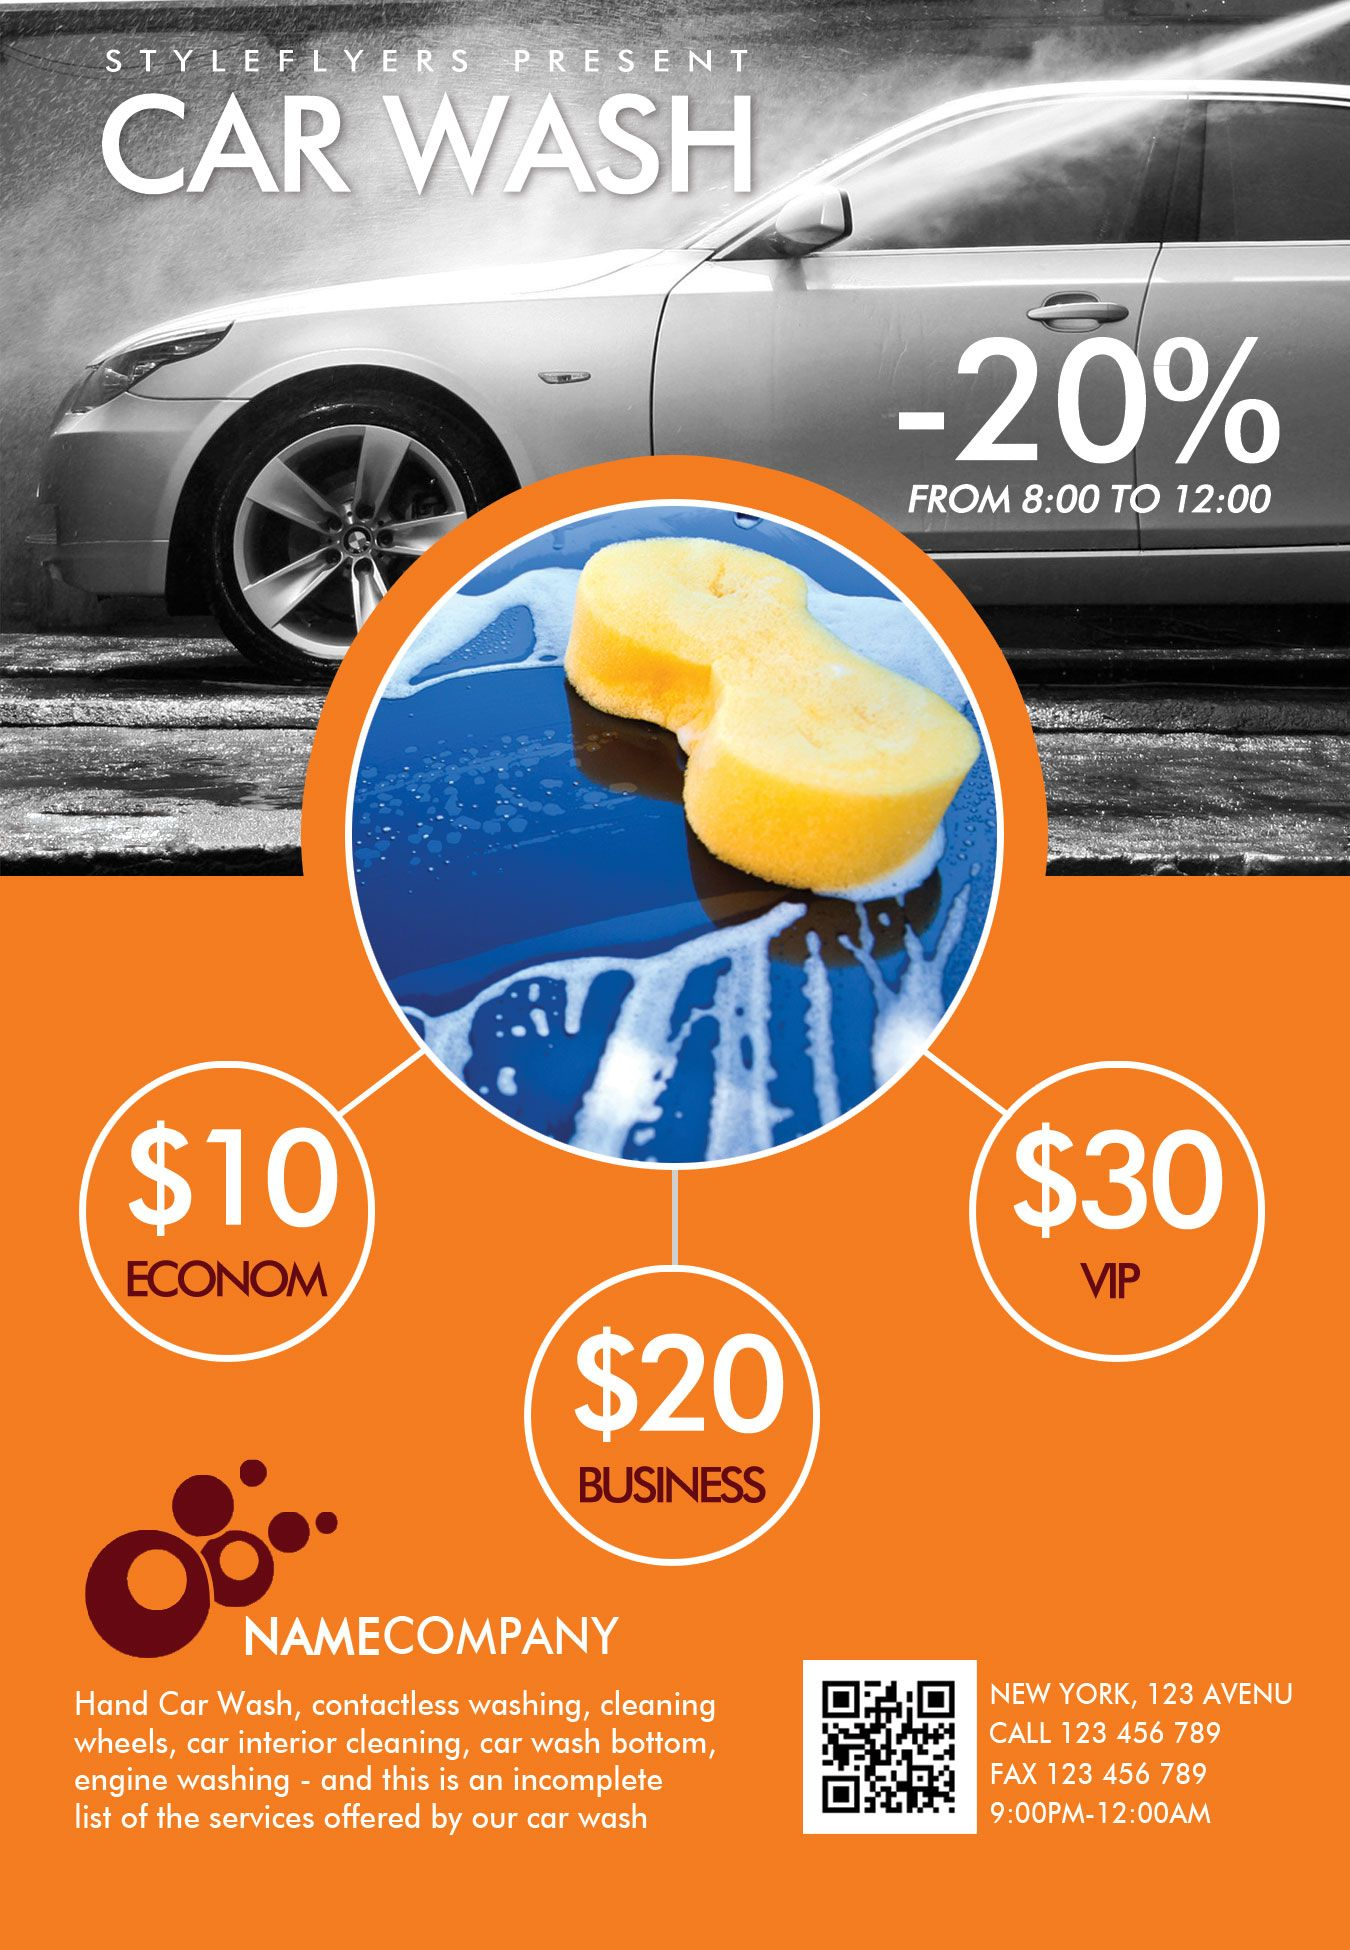 Downlosd our new premium flyer for your carwash promotion! #car ...